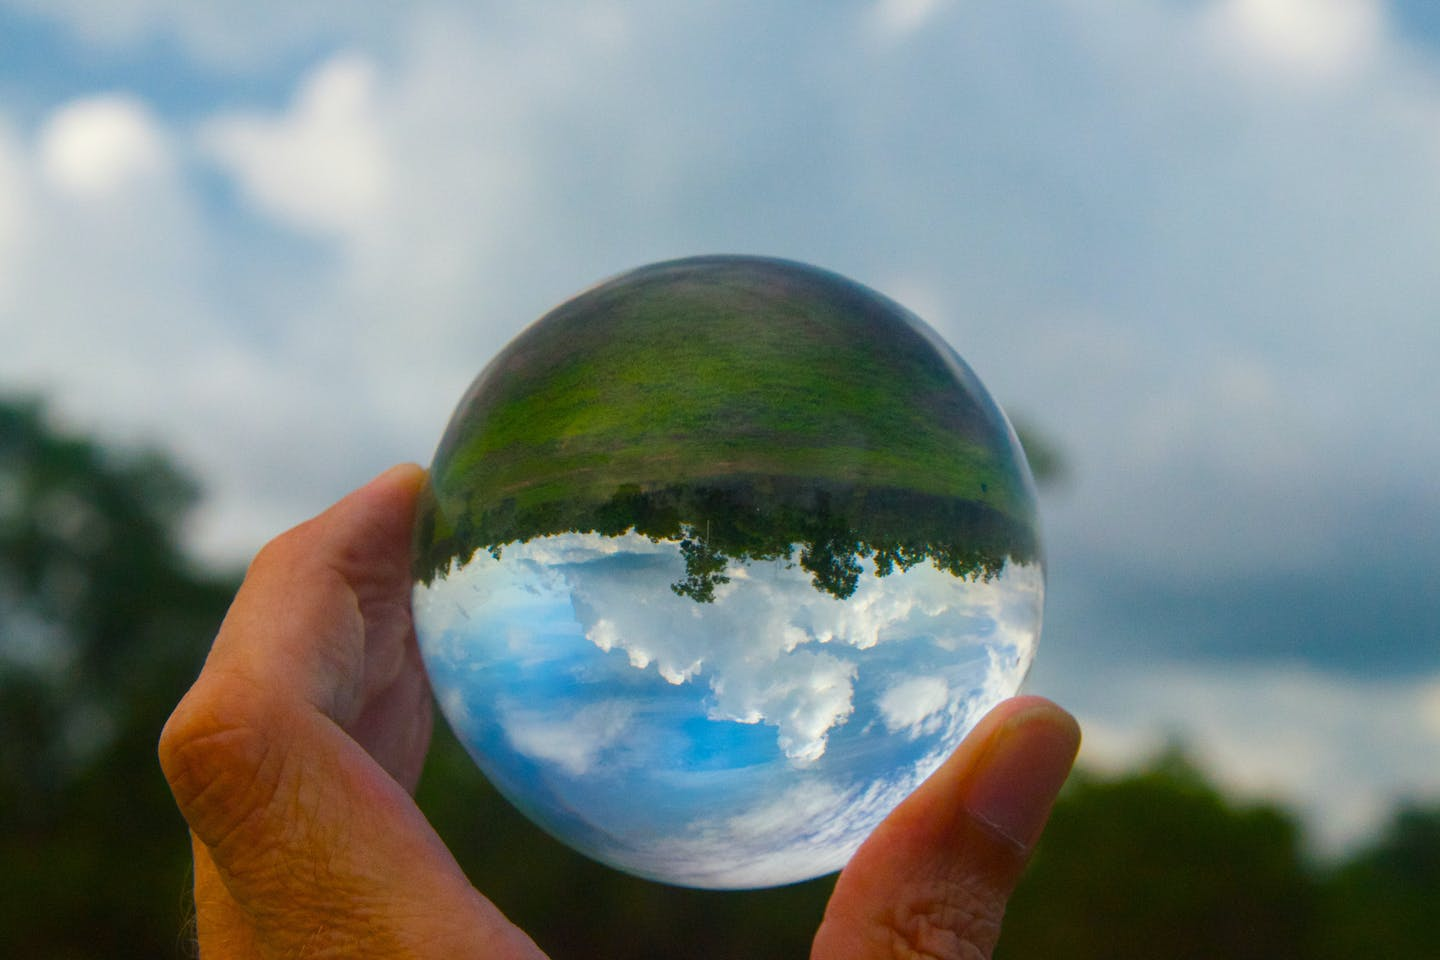 Glass orb and upside down world